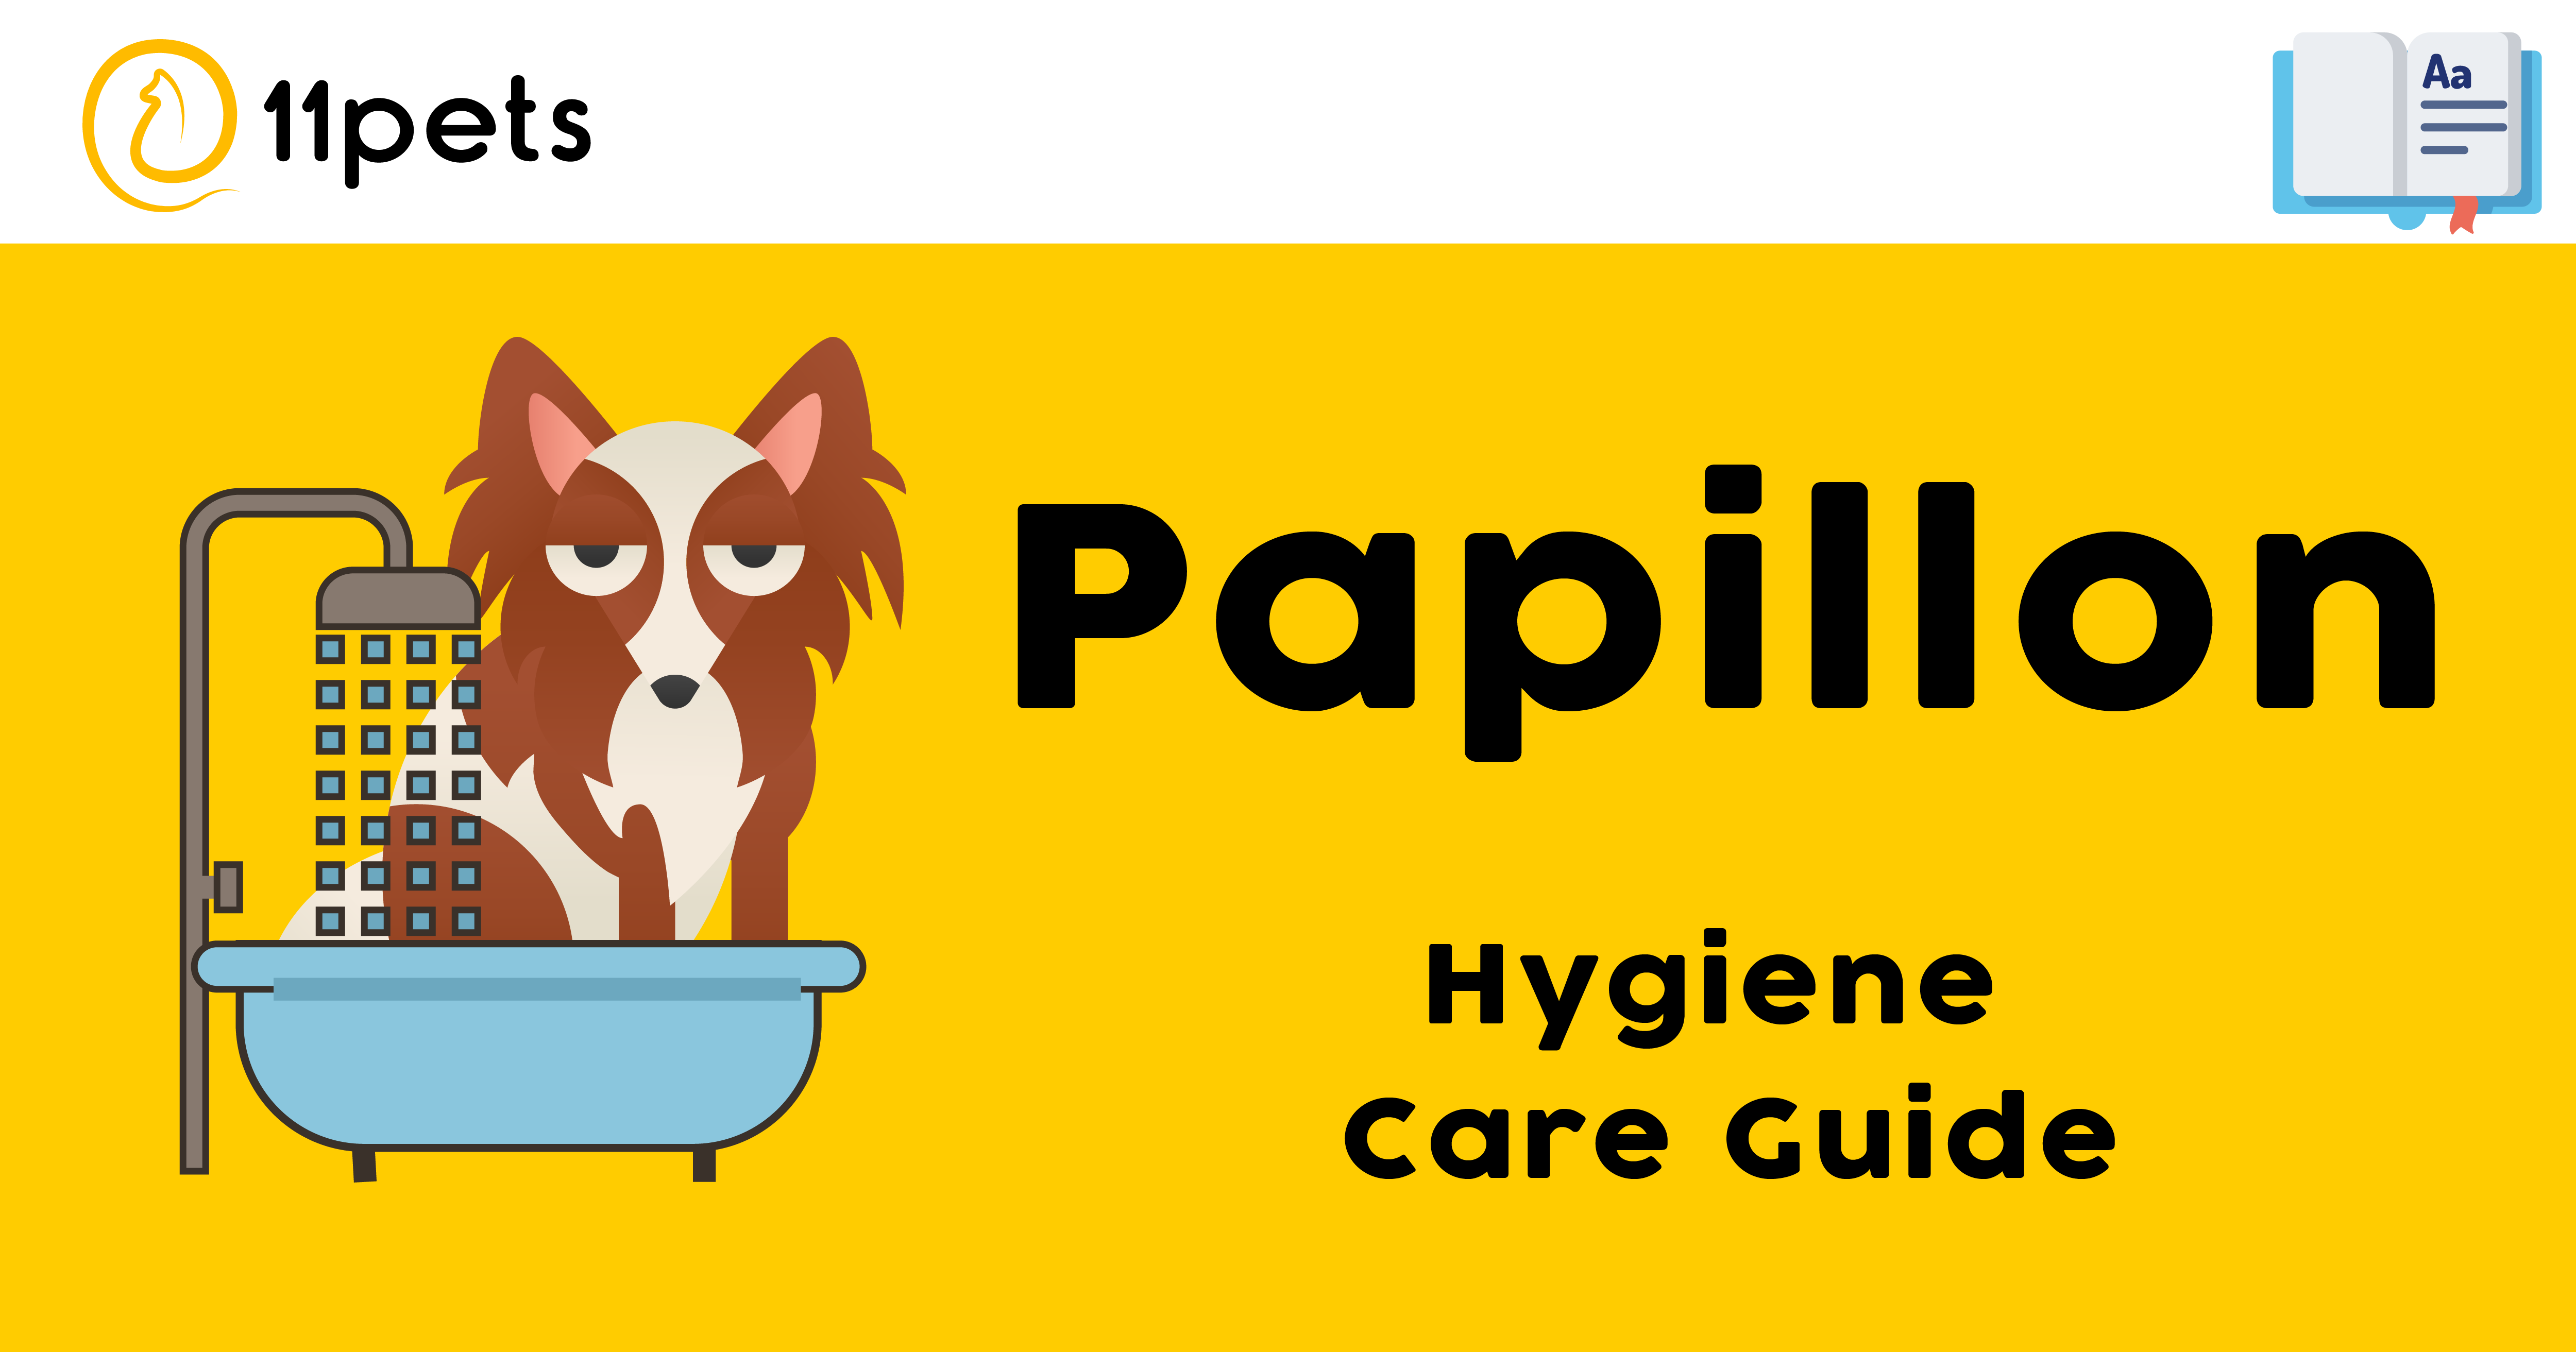 Hygiene Care Guide for Papillon